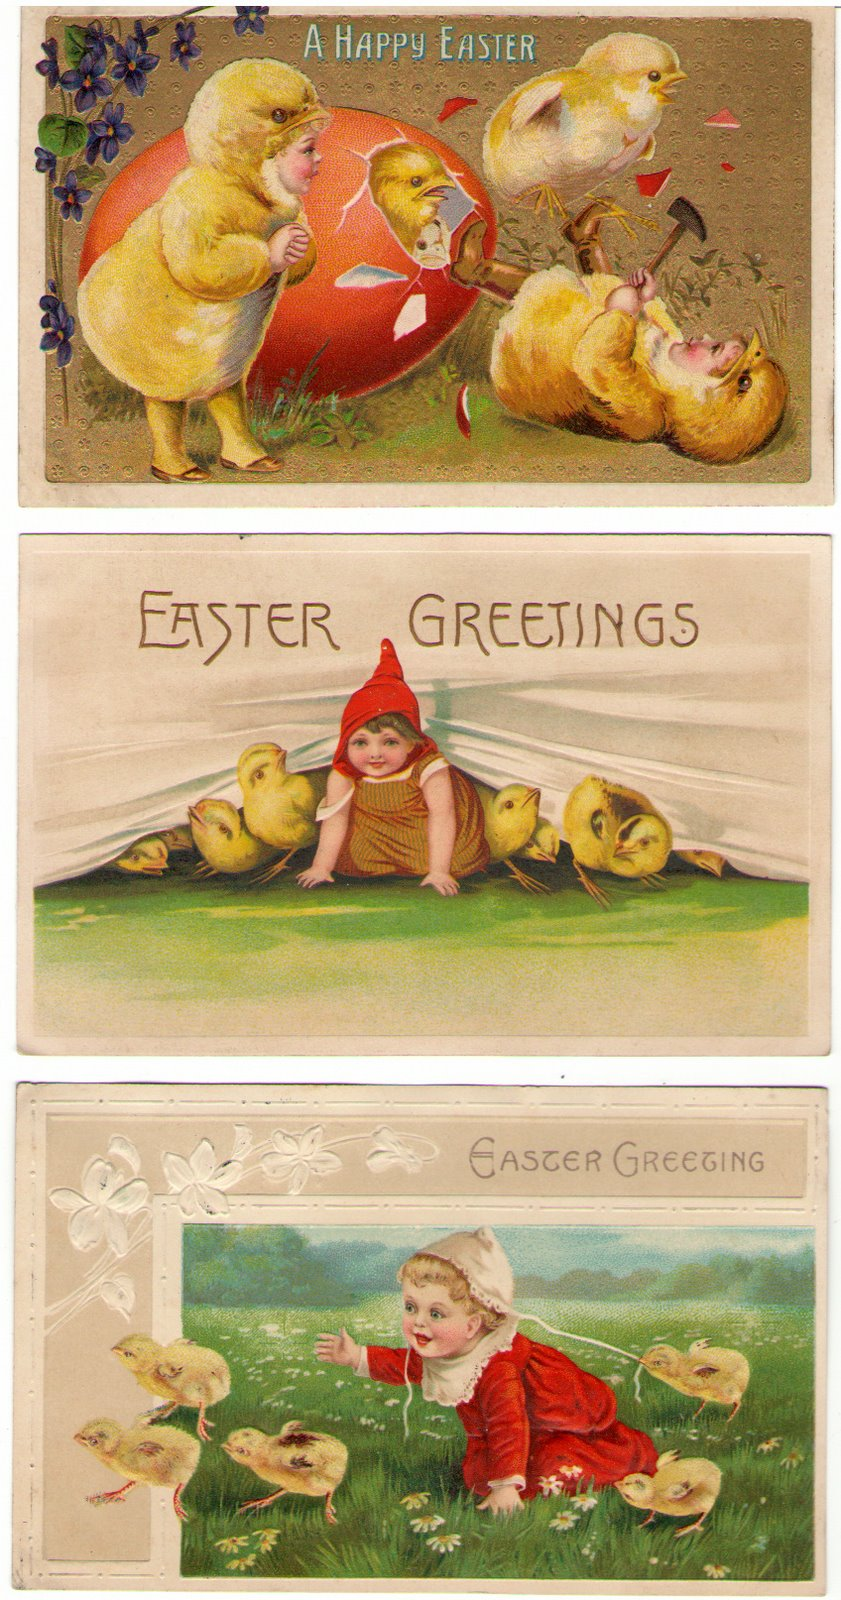 Easter post cards with cute kid